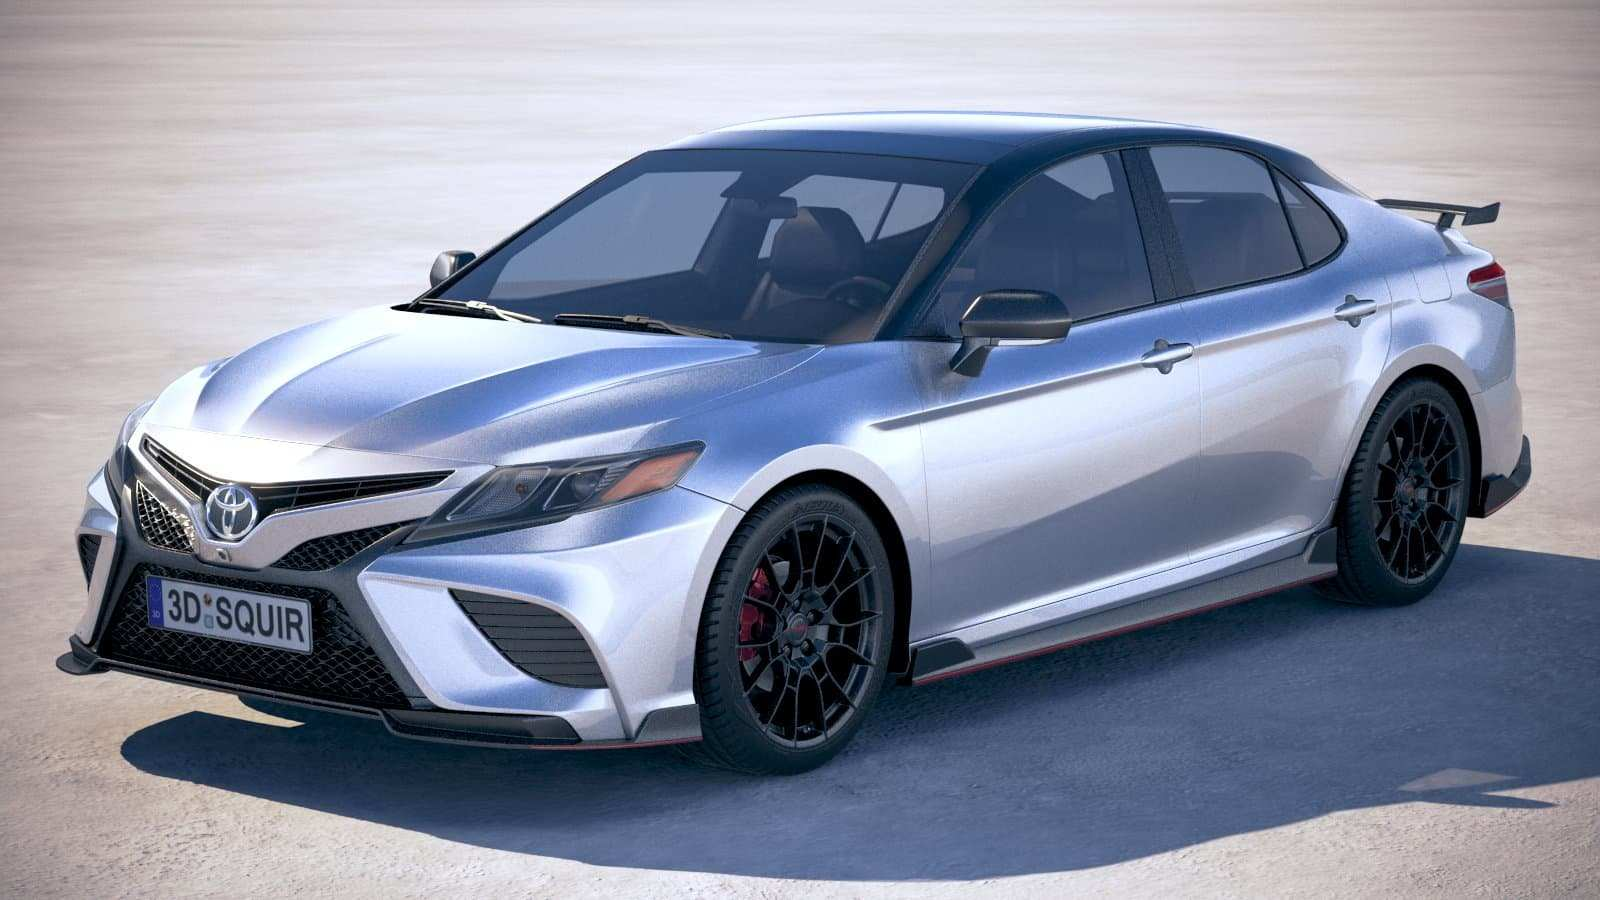 86 All New Toyota Camry 2020 Model Model by Toyota Camry 2020 Model